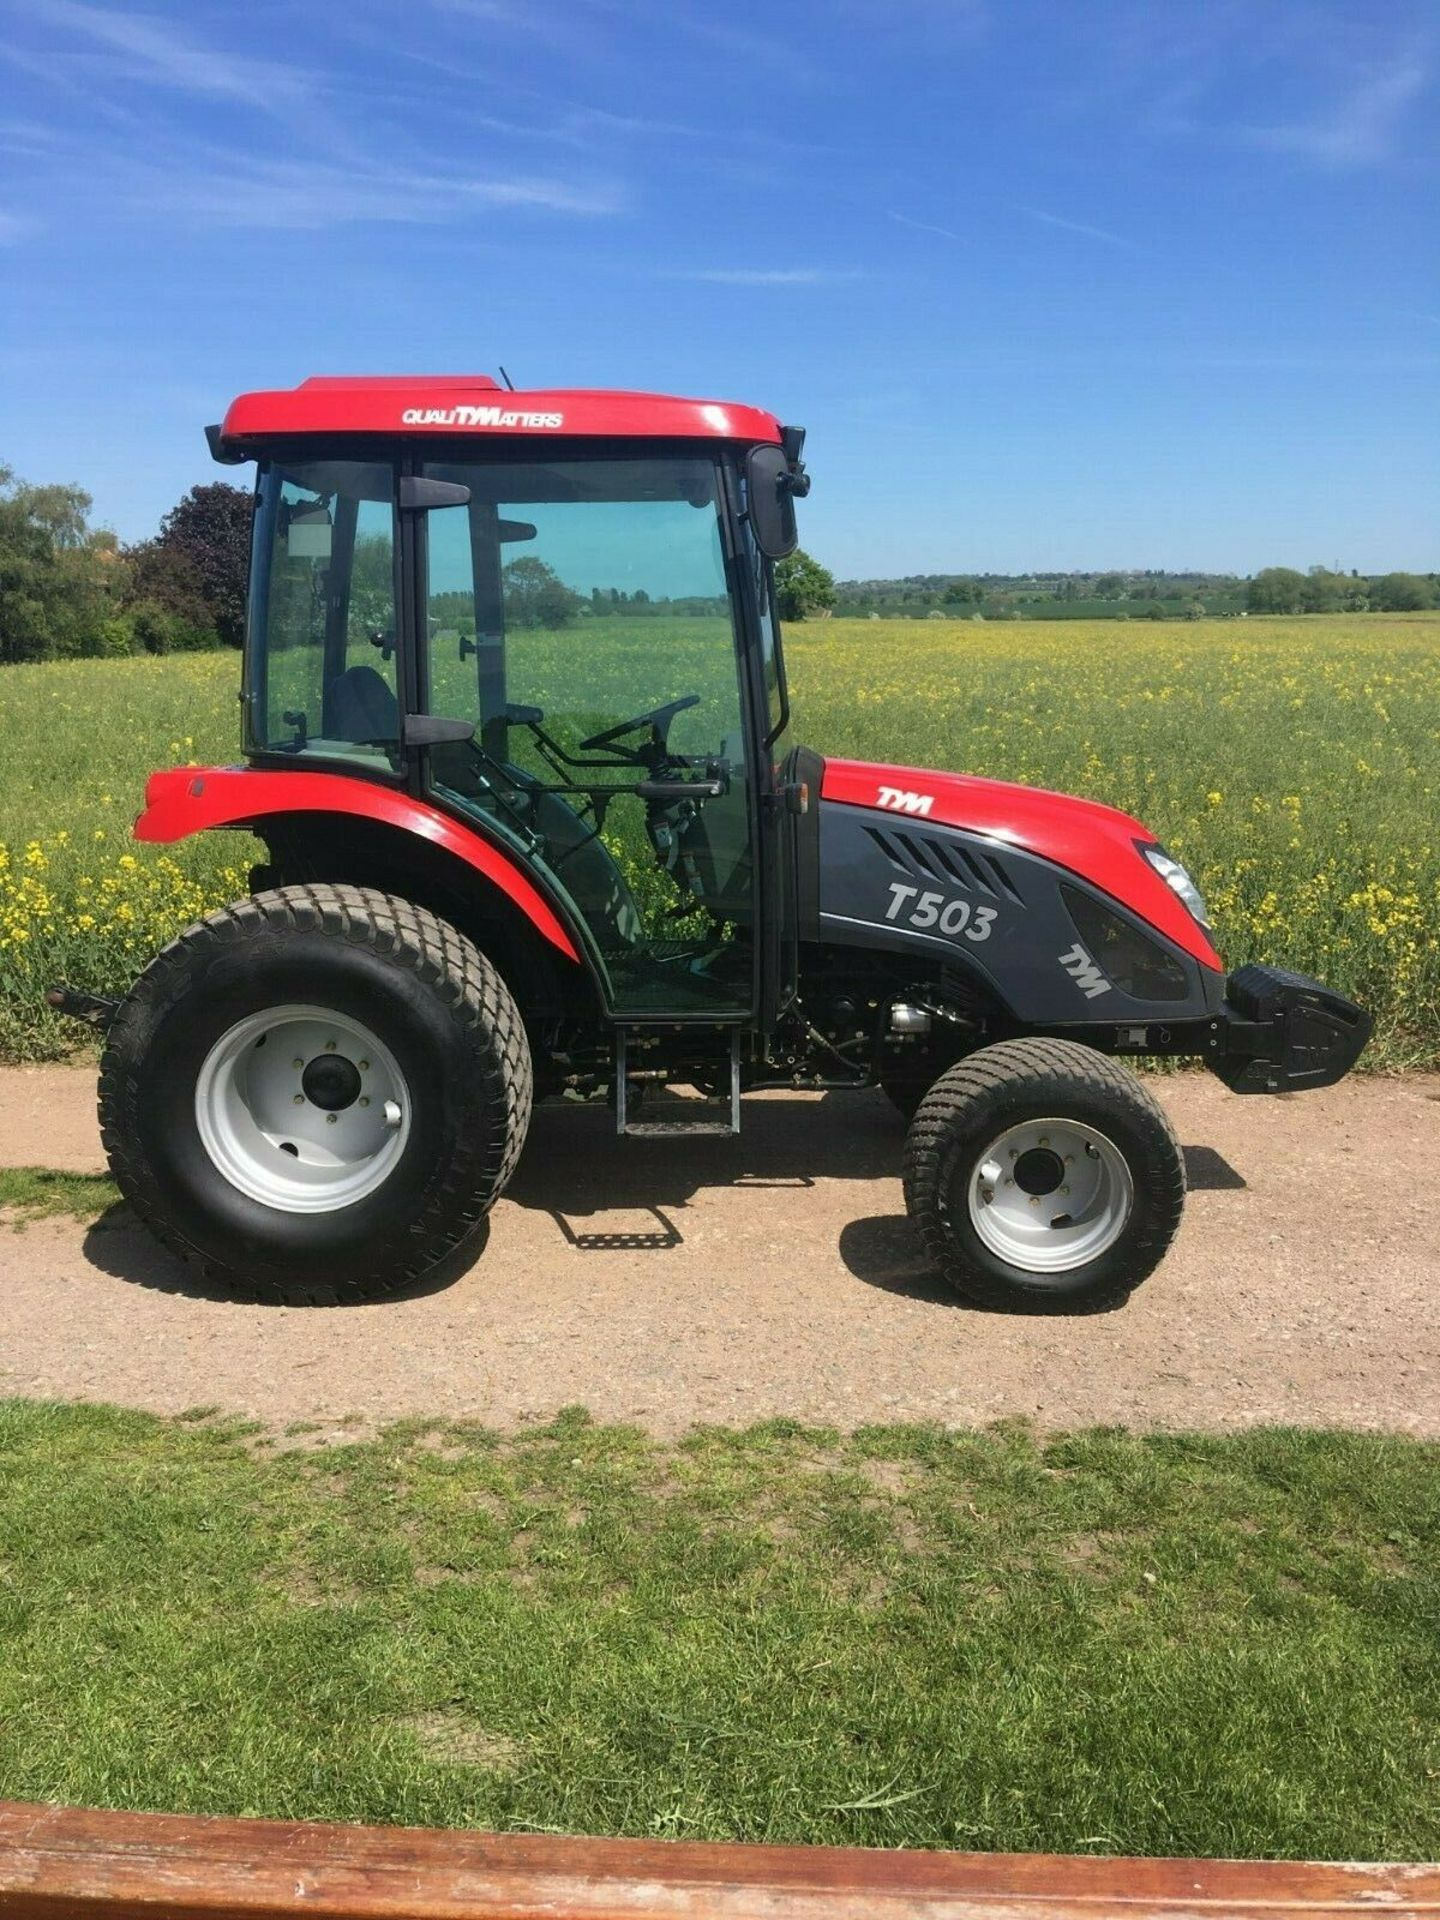 Lot 45 - COMPACT TRACTOR TYM T503 50HP, ONLY 945 HOURS, 4x4, YEAR 2013 *PLUS VAT*